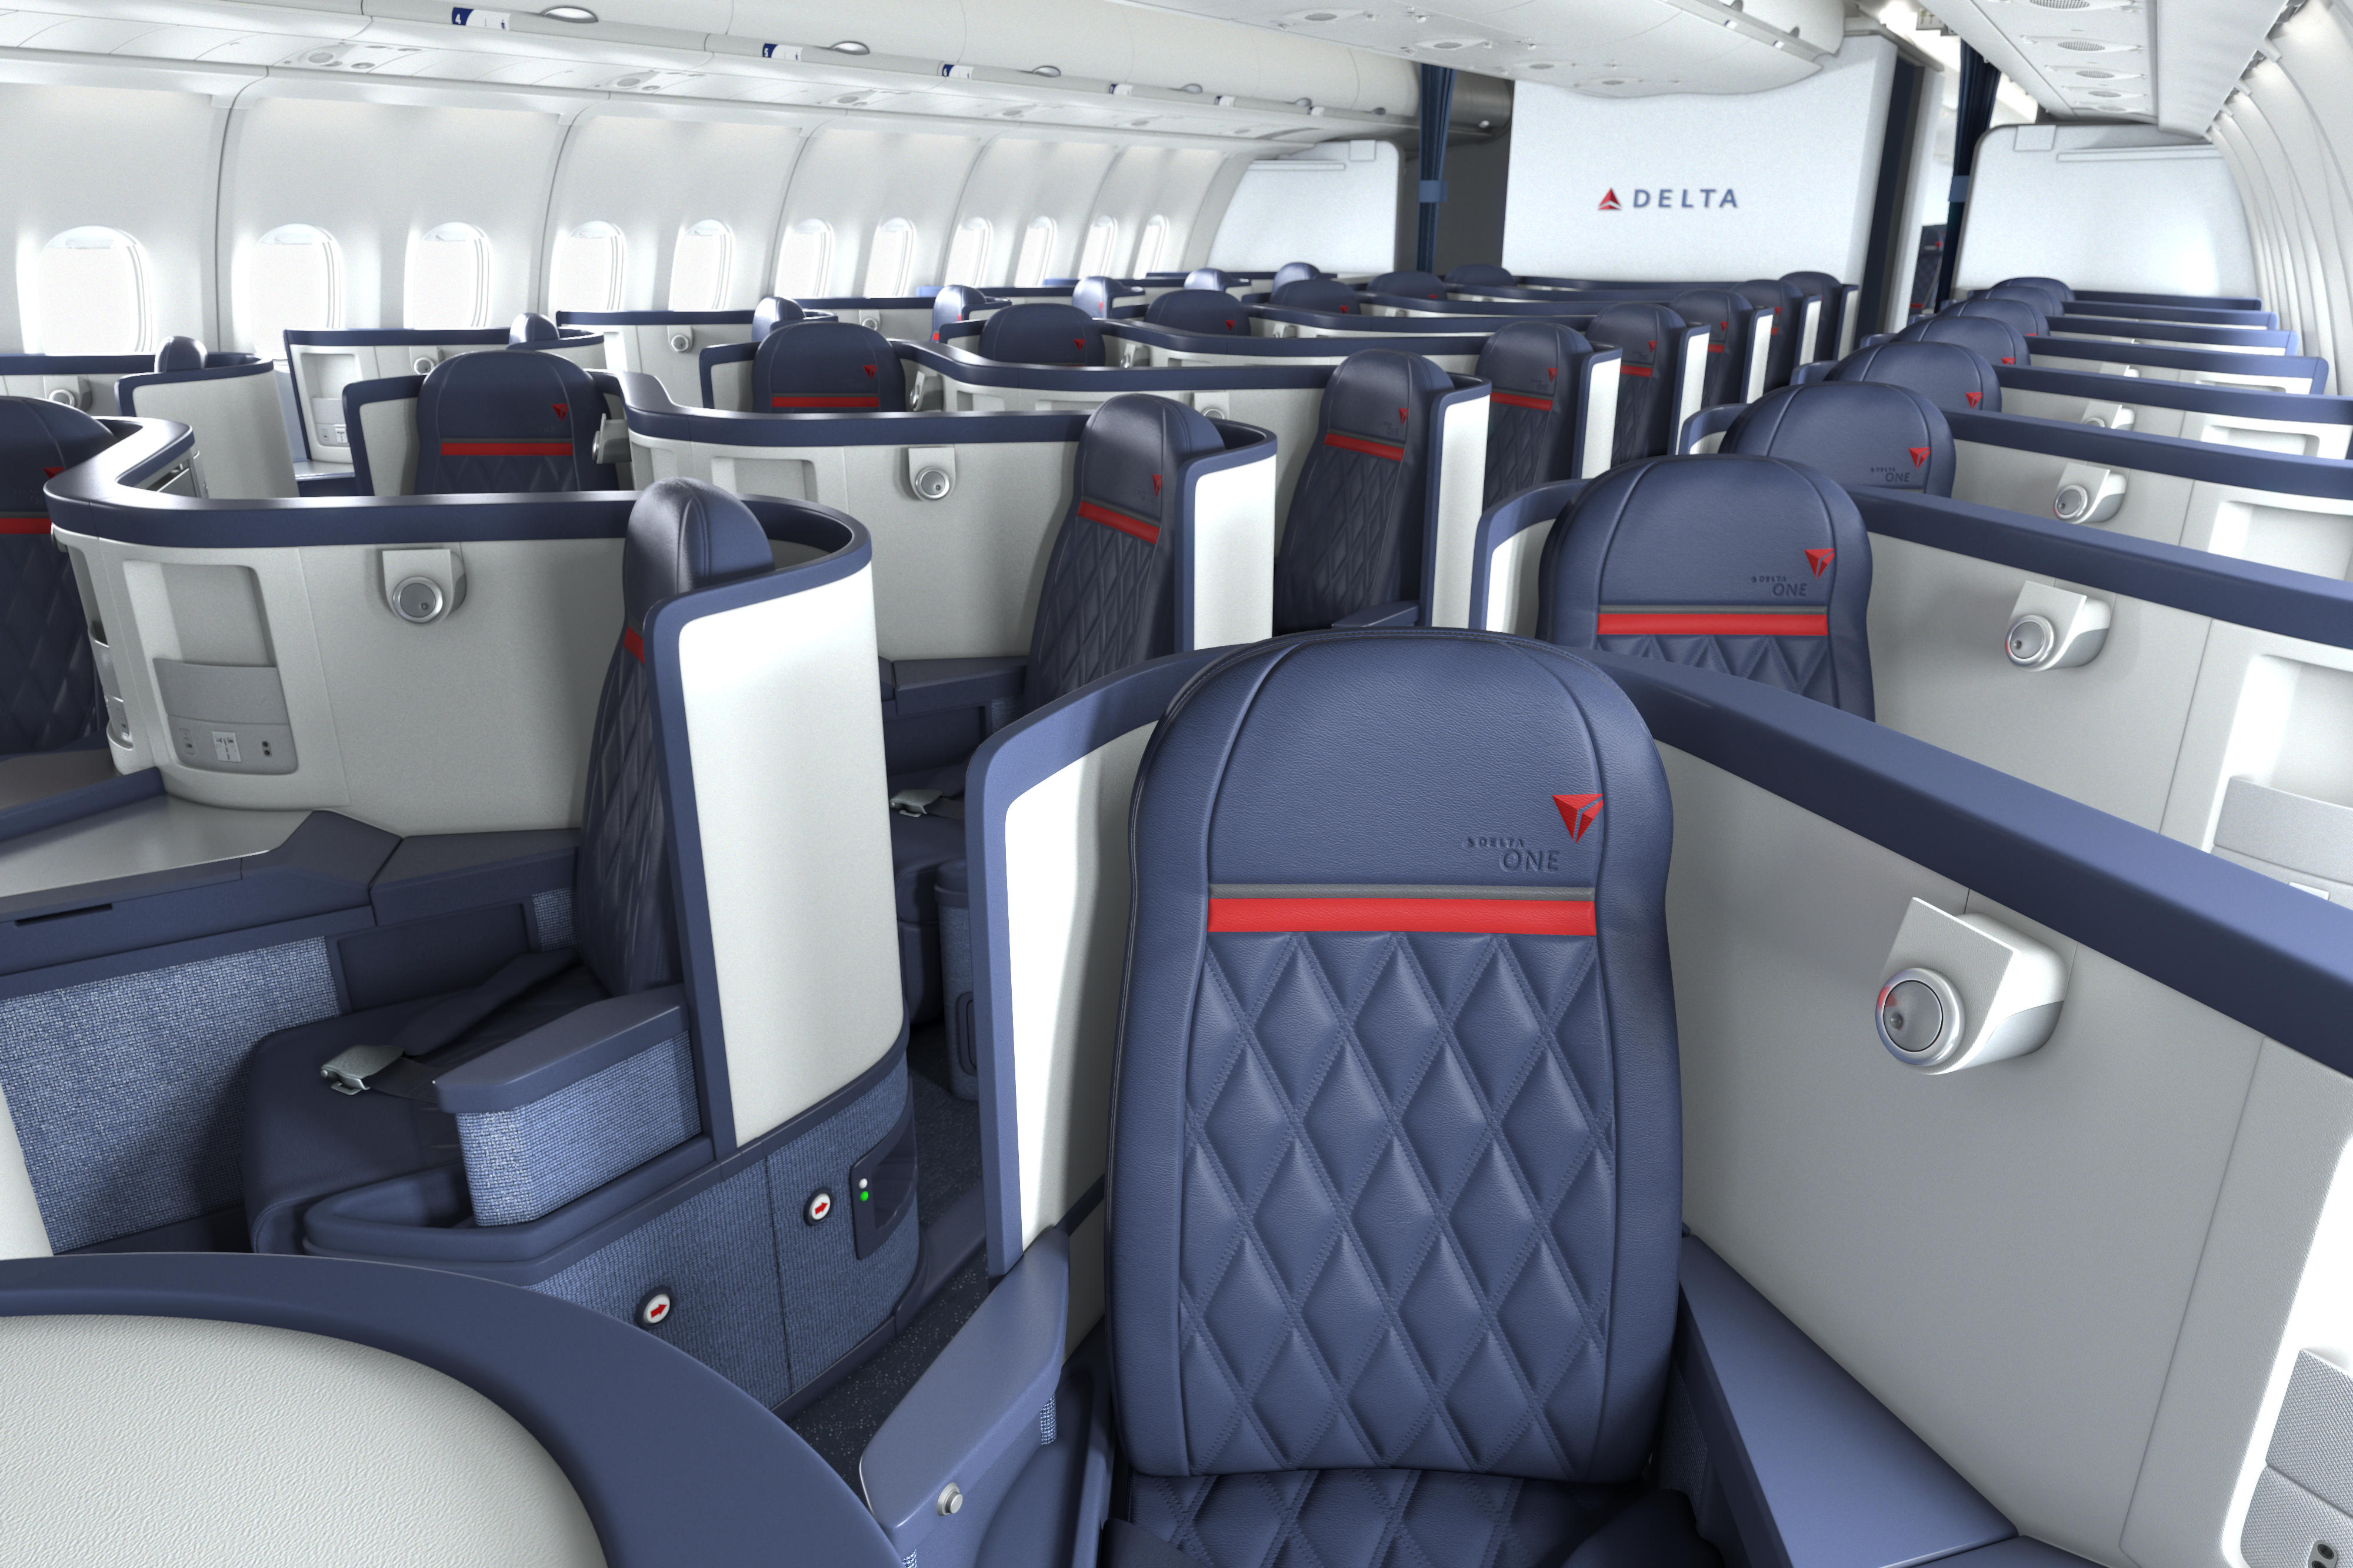 Delta Skymiles The Ultimate Guide